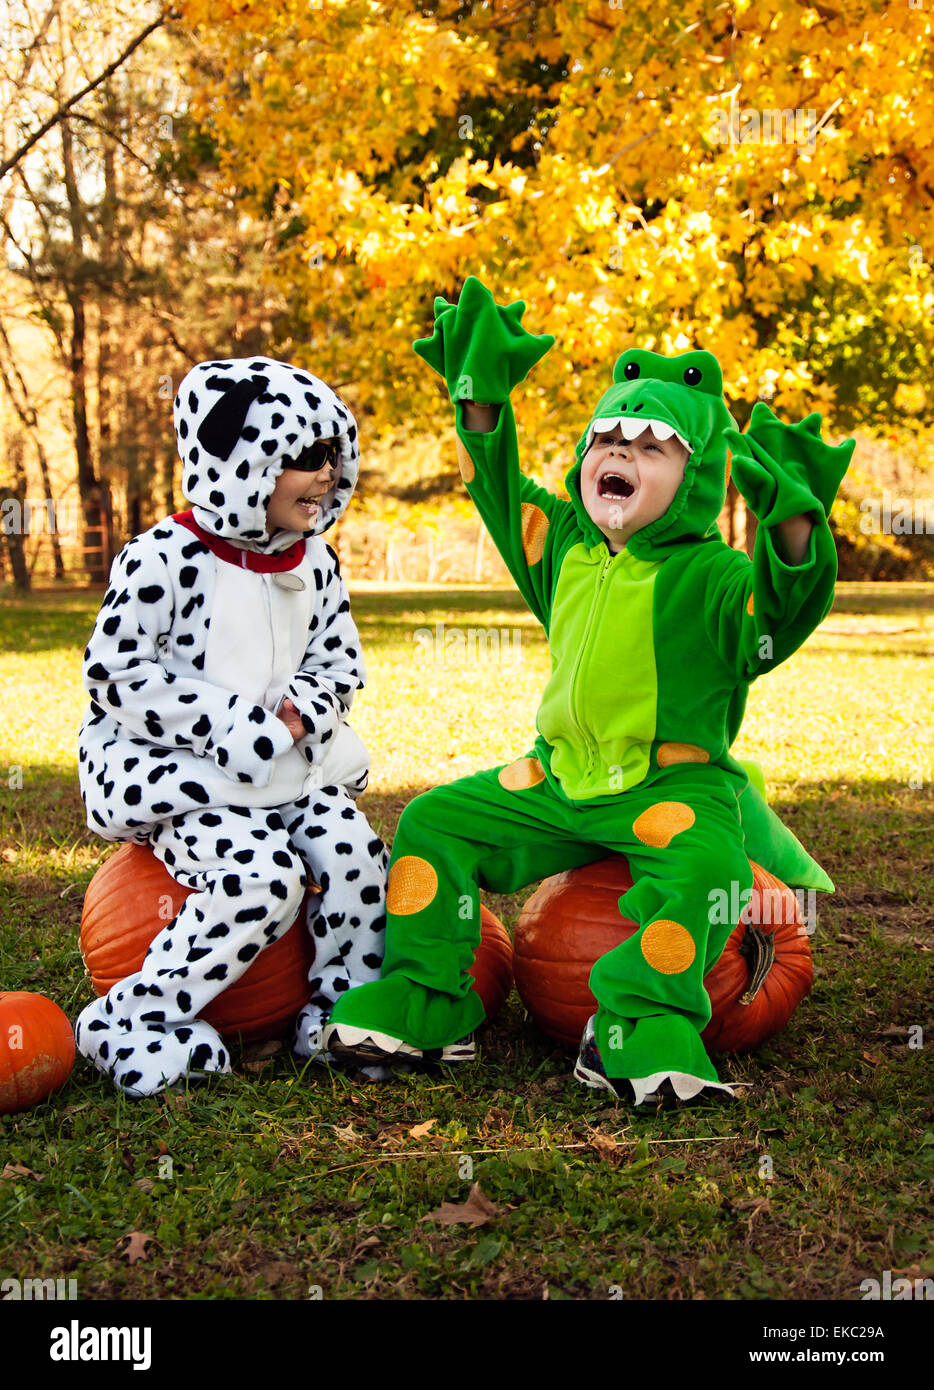 Children costume Halloween fun - Stock Image